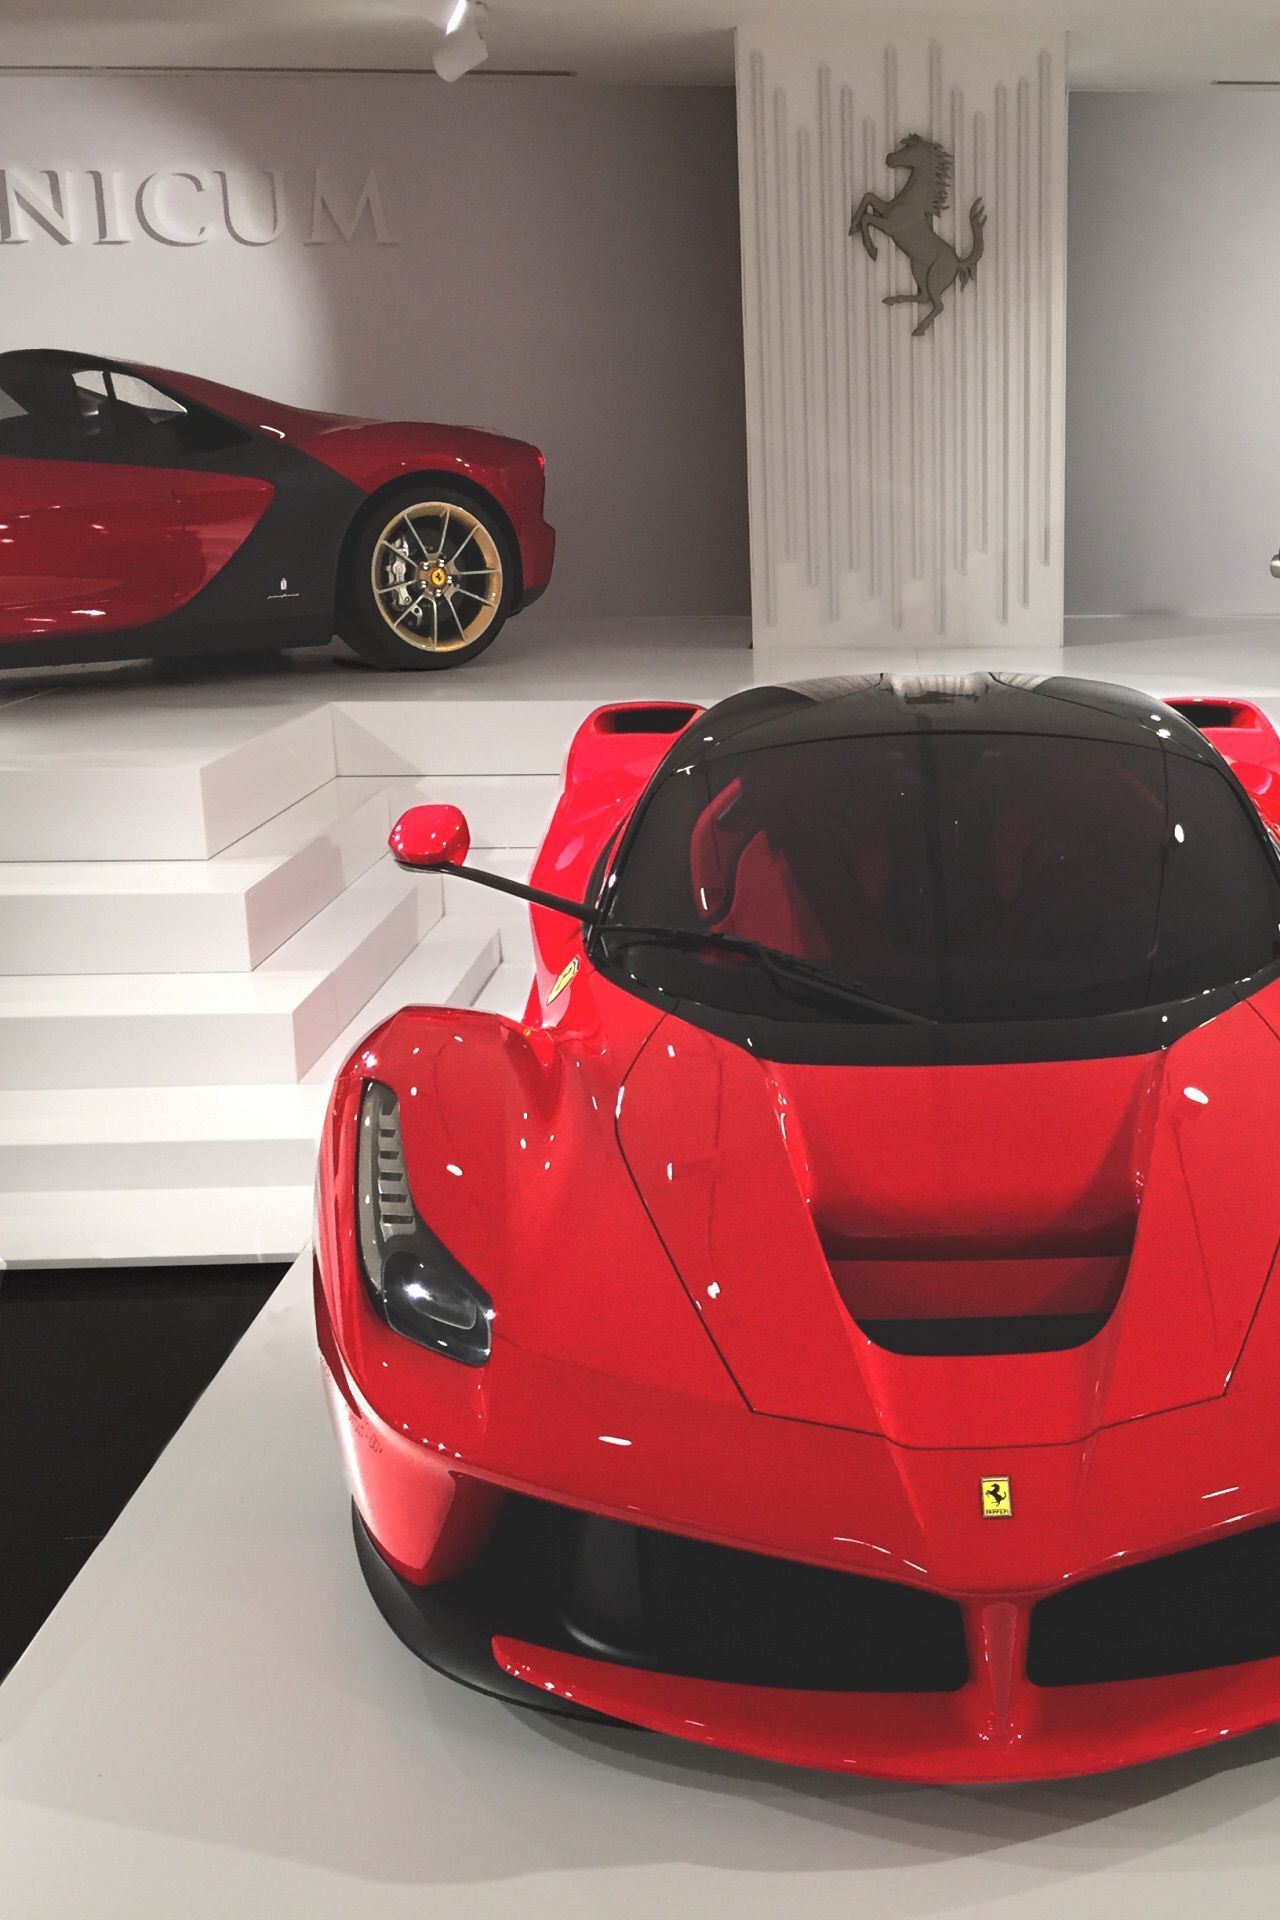 Pin By Colin Blad On Avto Voiture Ferrari Voiture De Sport